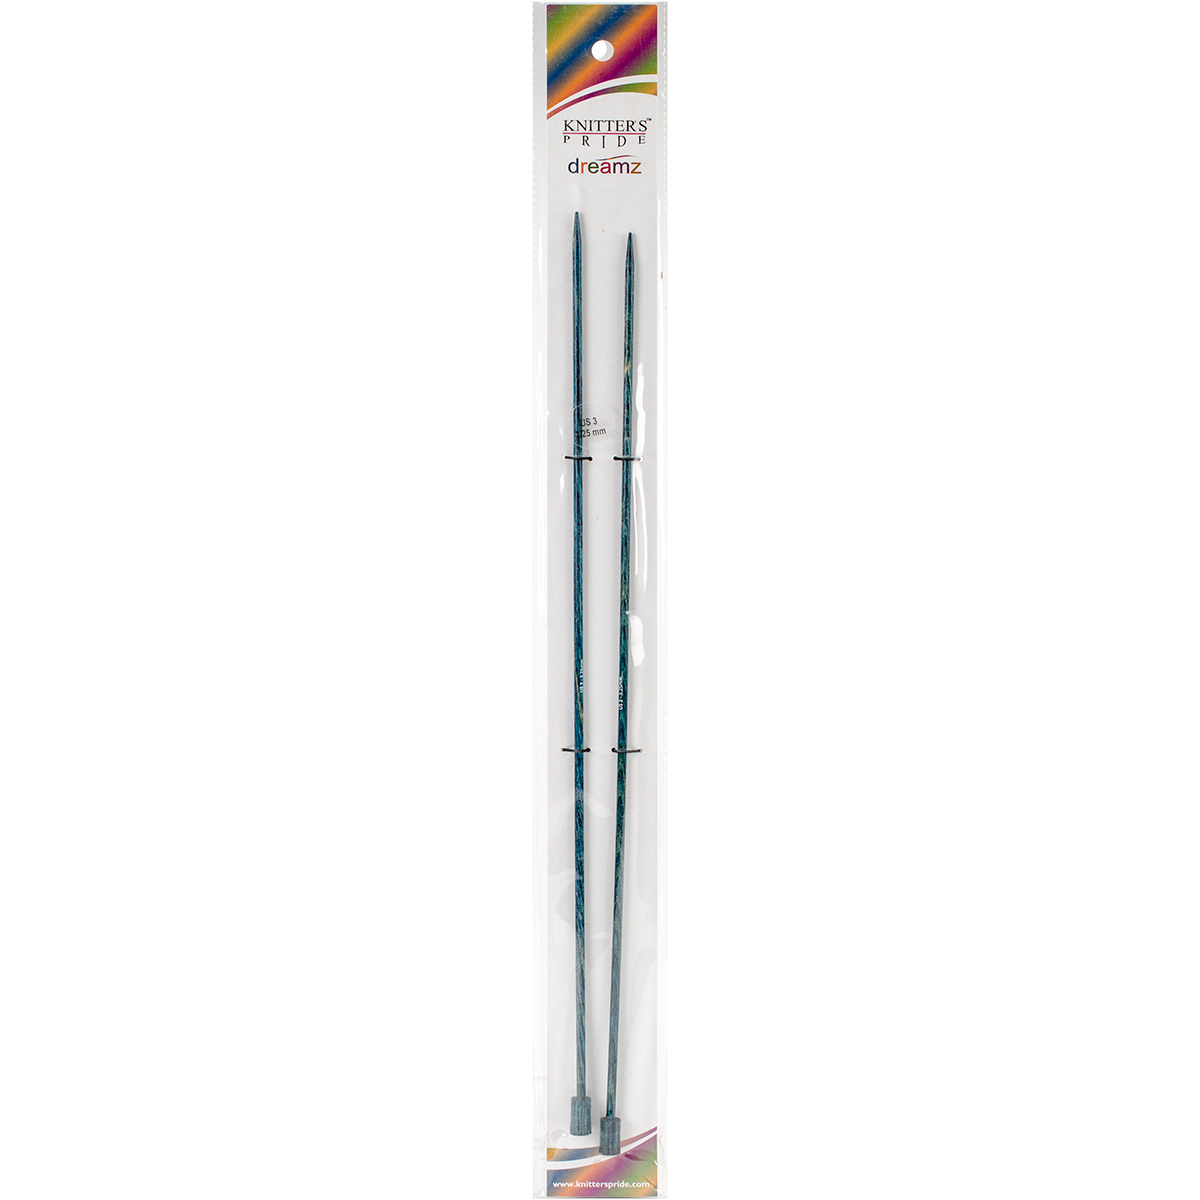 Dreamz Single Pointed Needles 14-Size 3/3.25mm